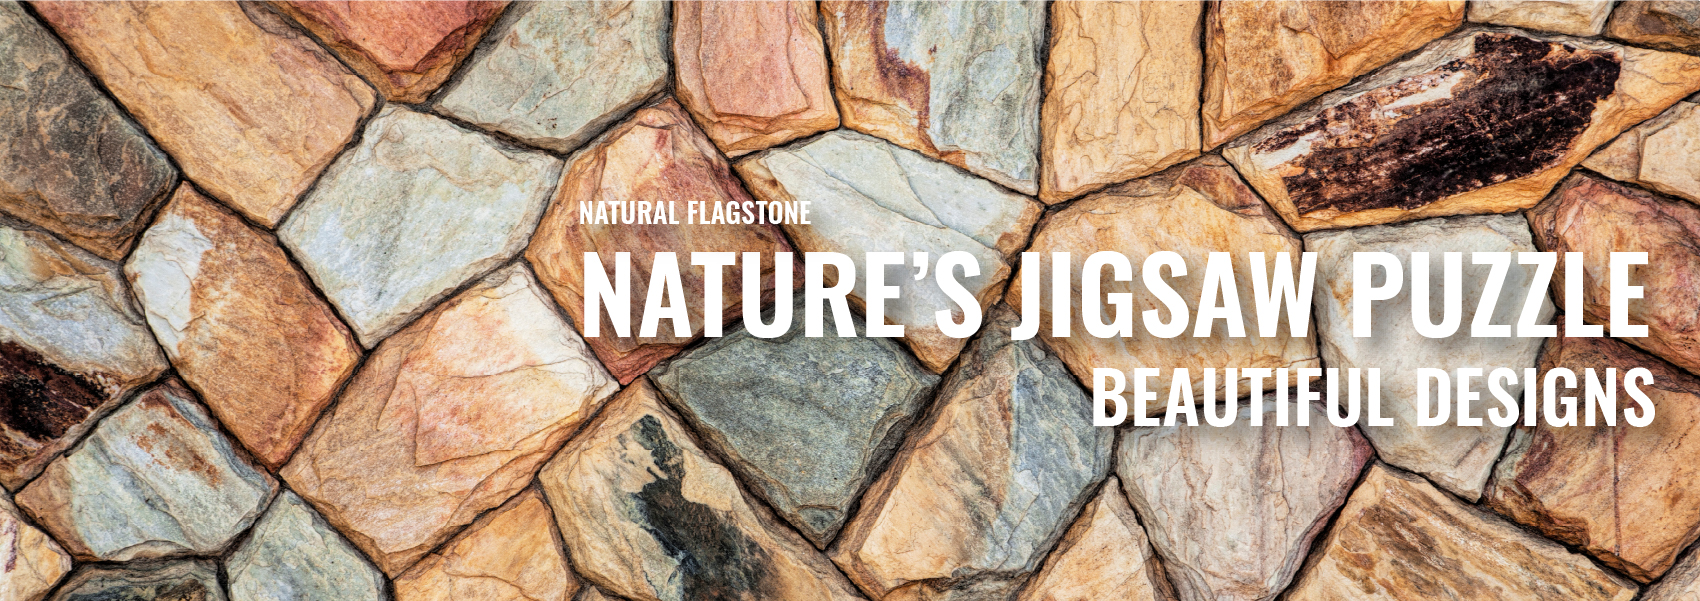 Rockland natural flagstone products banner.